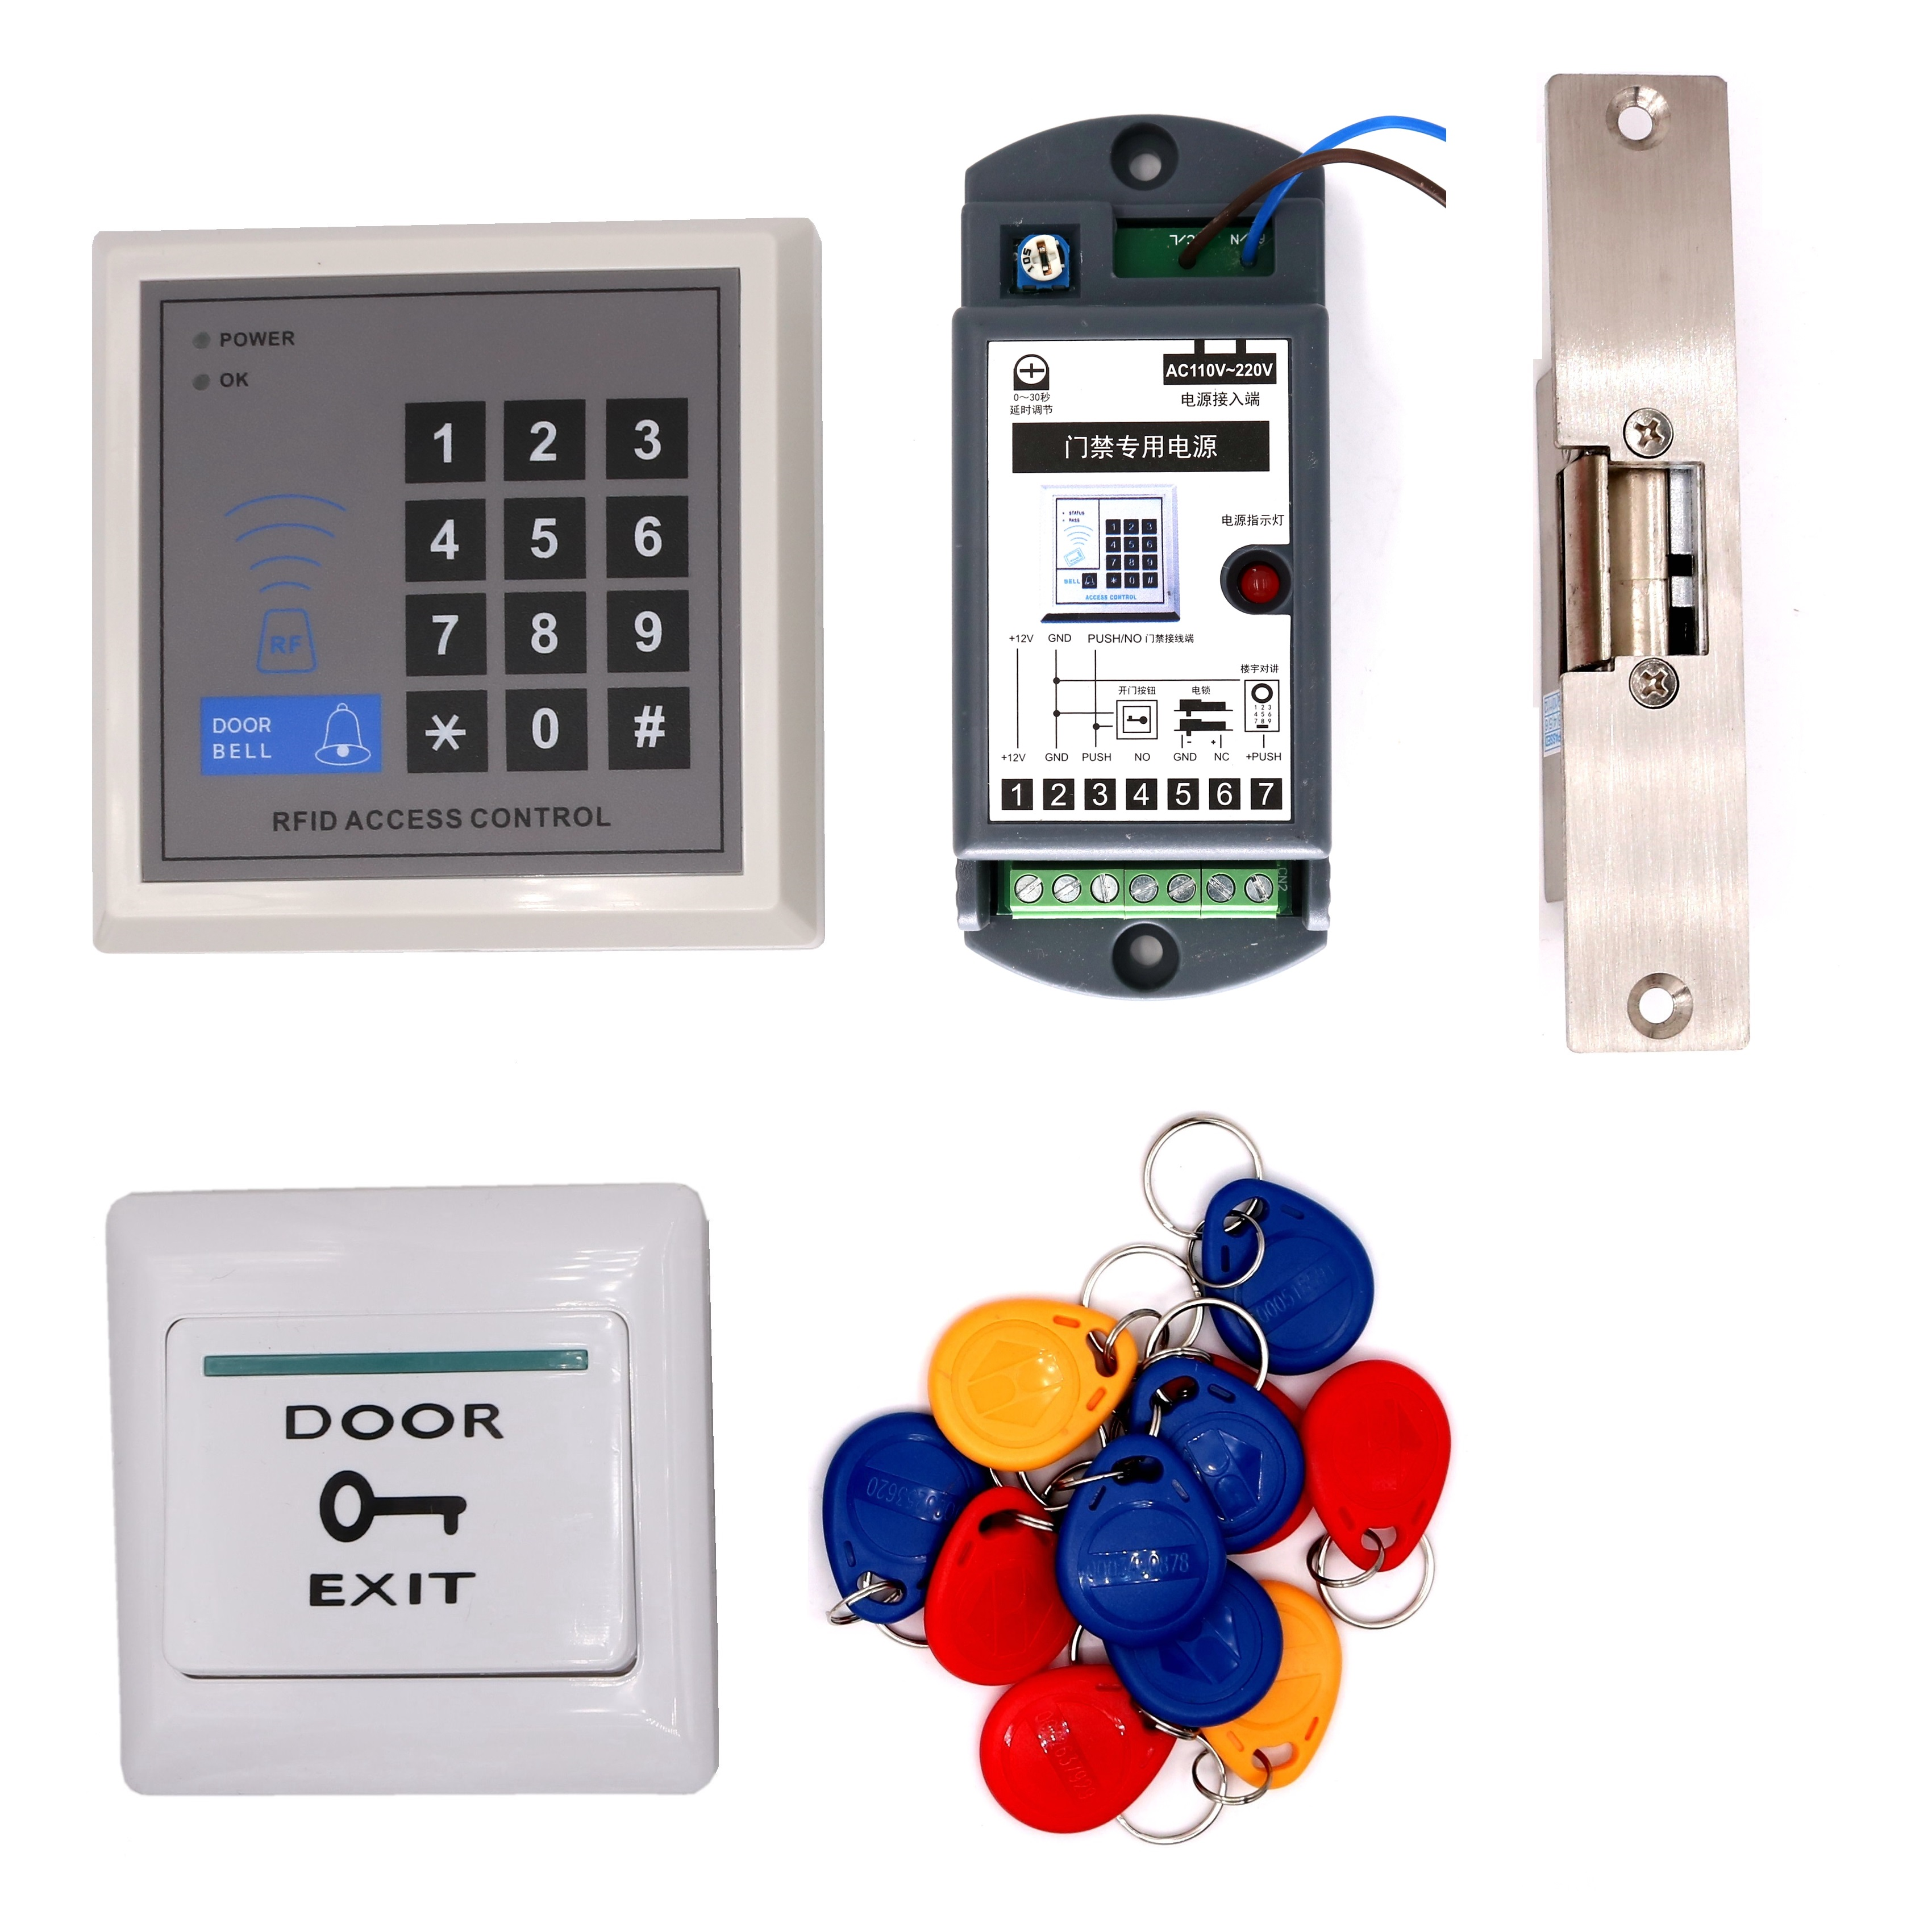 RFID 125Khz Proximity Card Password Entry System Door Gate Access Control system Fail secure Fail Safe Electric Strike Kit 125khz em4100 rfid proximity id card 1 8mm for entry access control